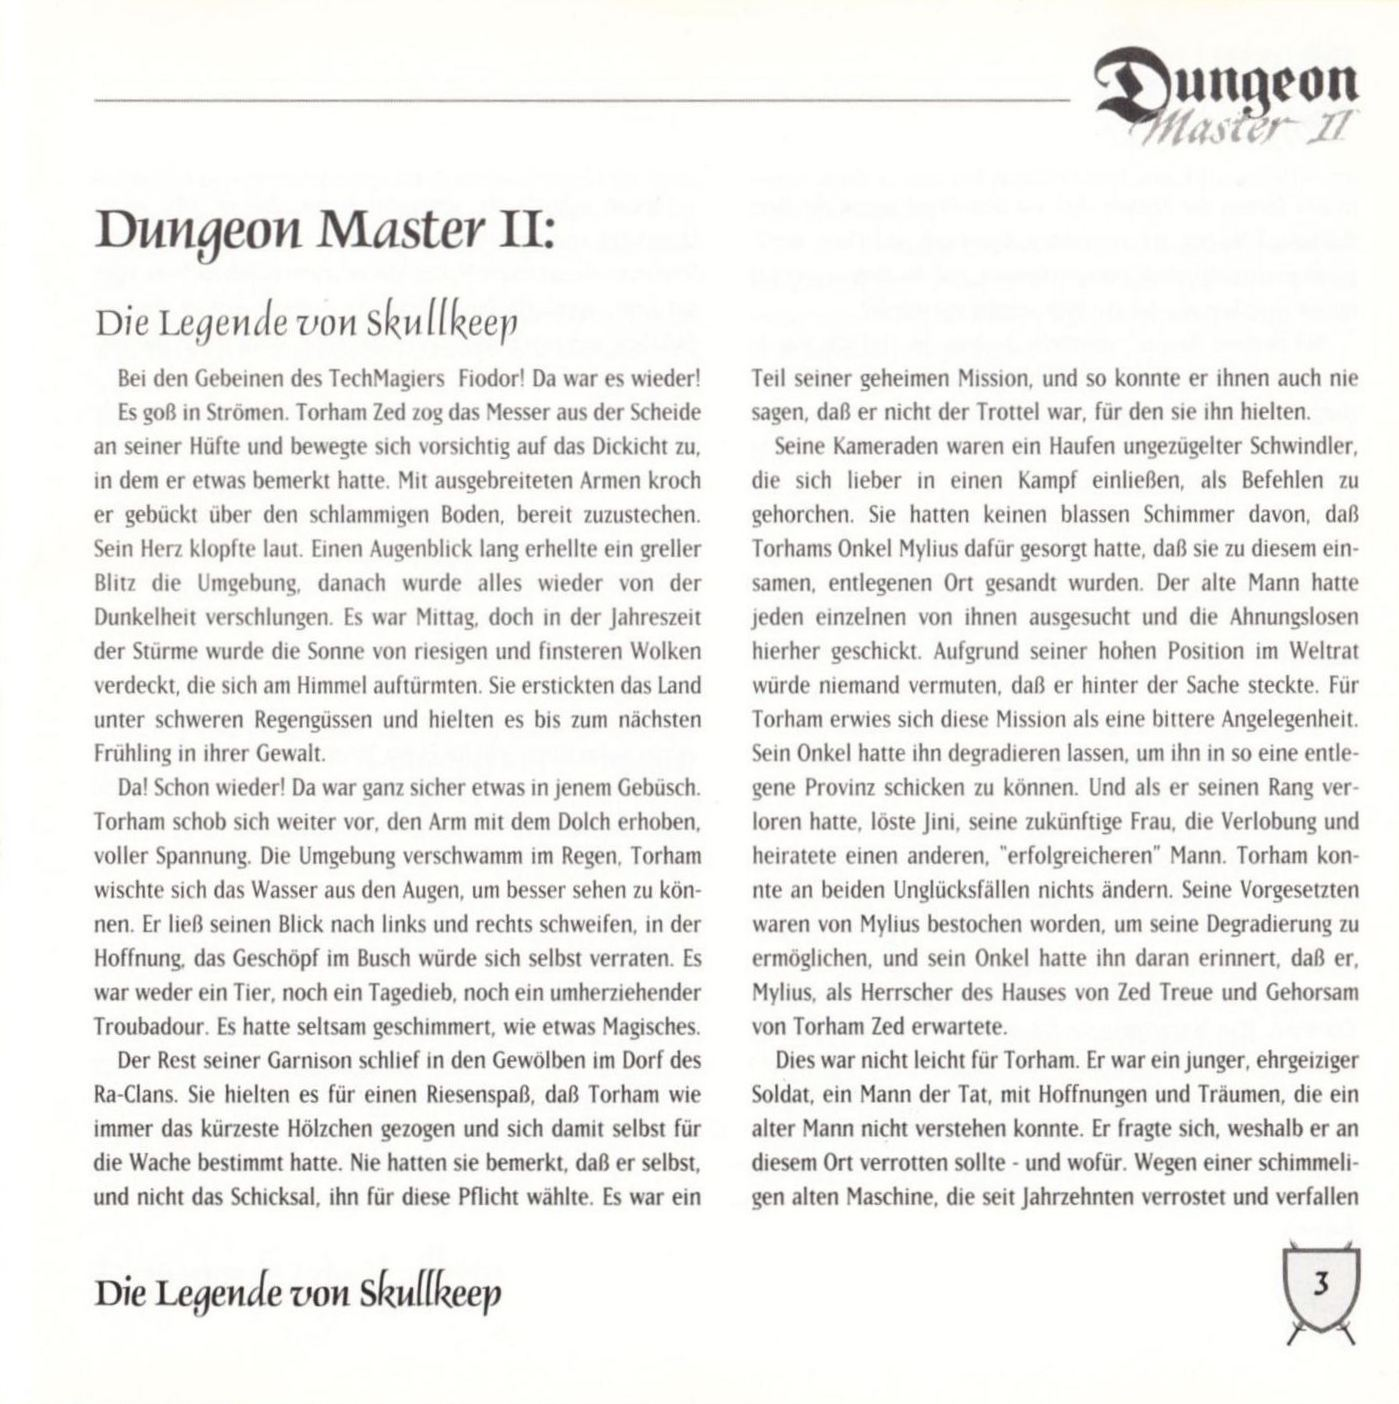 Game - Dungeon Master II - DE - PC - Blackmarket With Booklet - Booklet - Page 005 - Scan